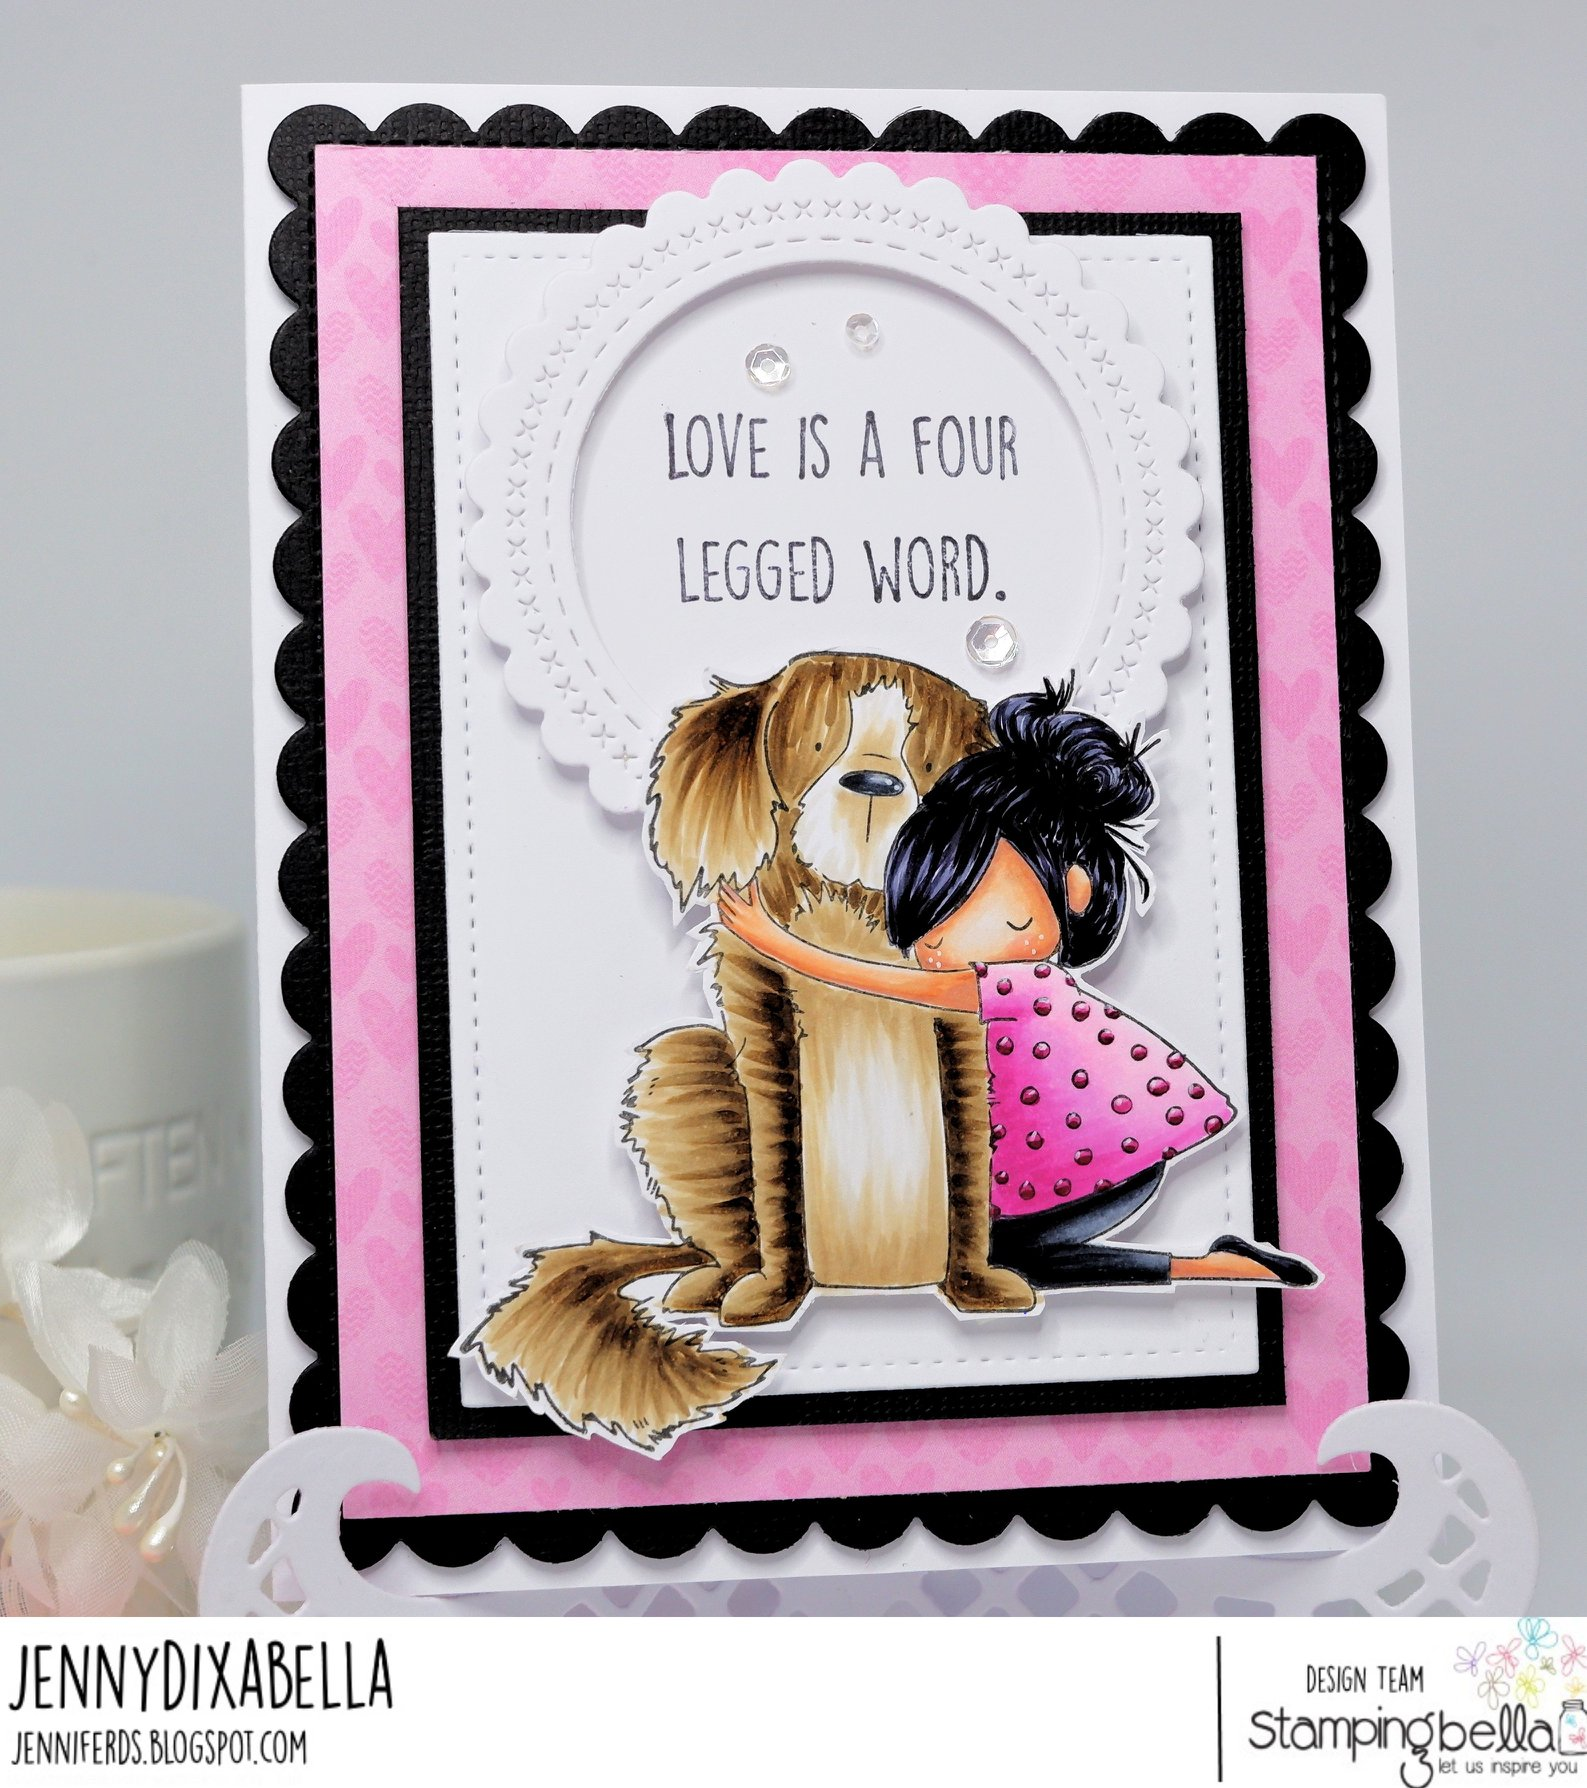 www.stampingbella.com: rubber stamp used: TINY TOWNIE DAWN LOVES HER DOG  Card made by JENNY DIX